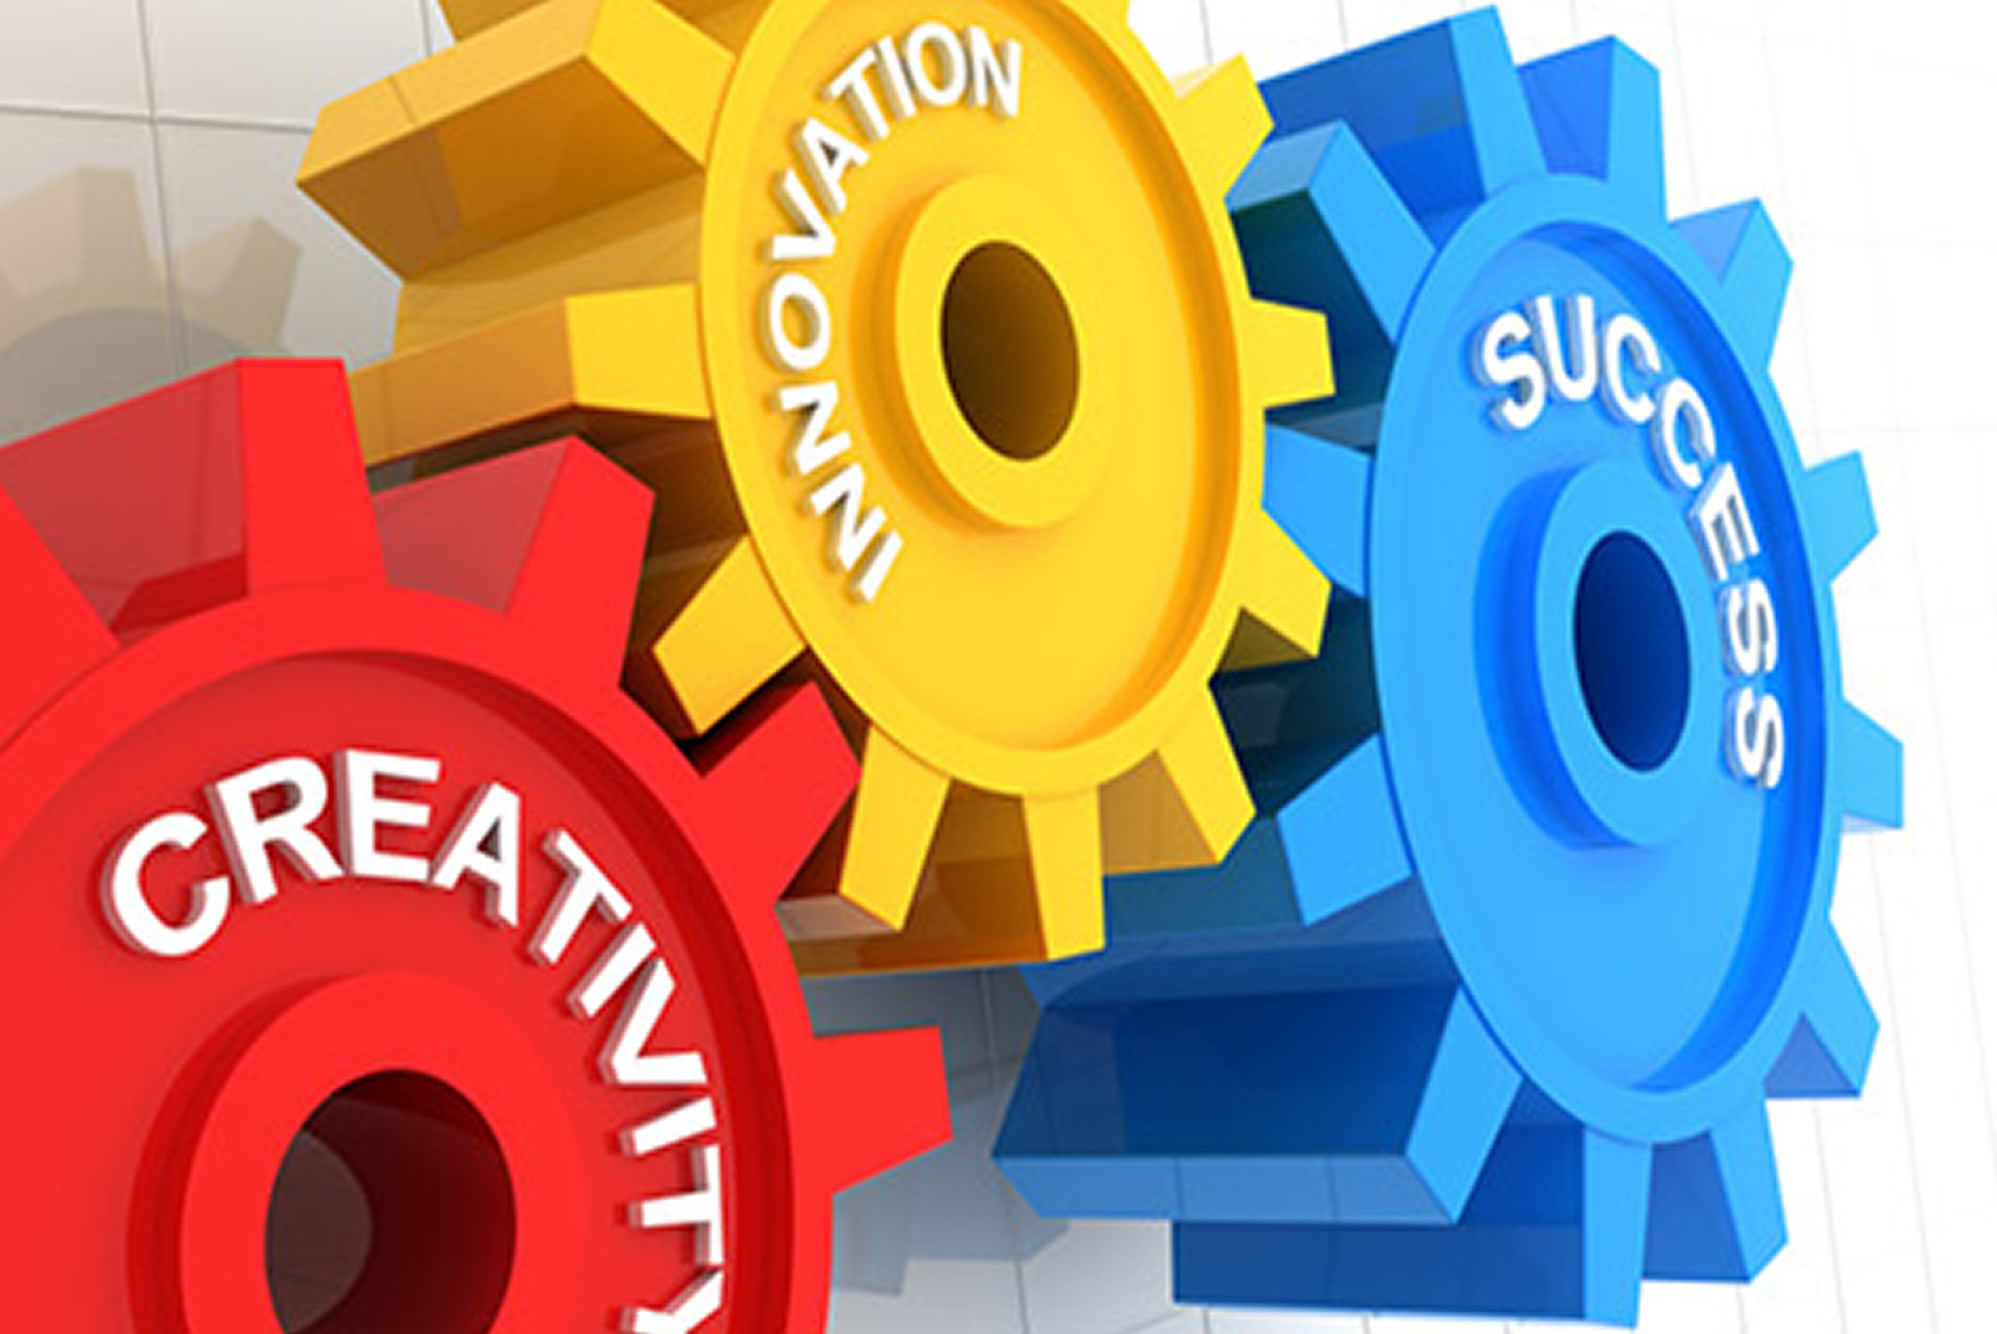 cim creative innovative management Creativity and innovation please wait while we gather the details for this course learning objectives recognize your potential for thinking creatively and enabling innovation generate innovative solutions by discovering and testing creative ideas.